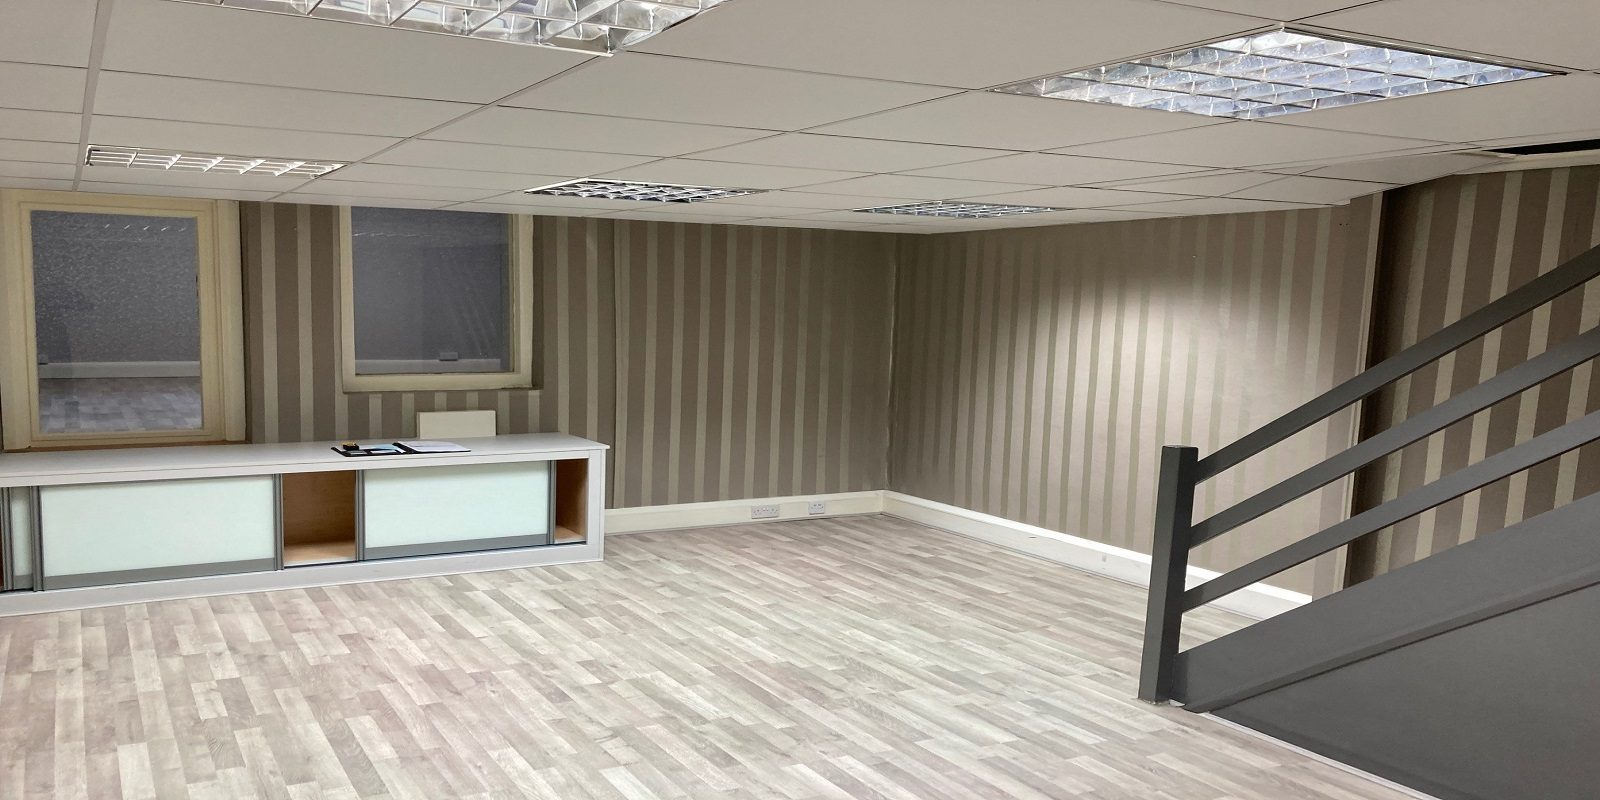 SELF-CONTAINED OFFICES TO LET NEAR EDGWARE ROAD